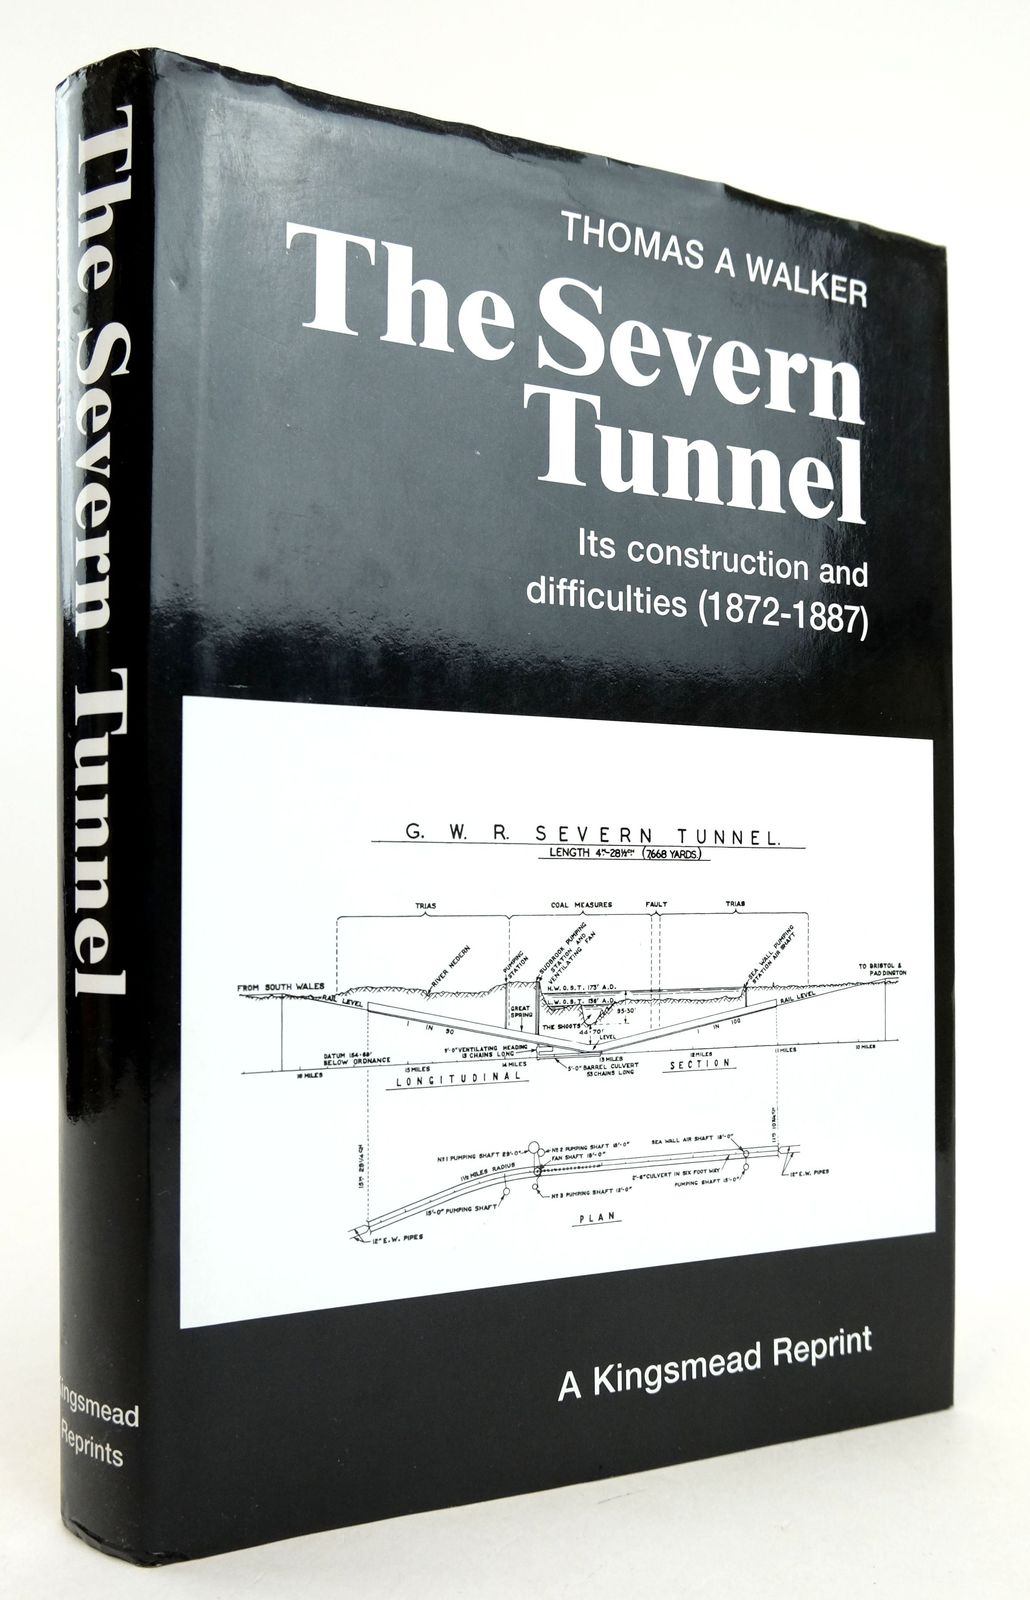 Photo of THE SEVERN TUNNEL ITS CONSTRUCTION AND DIFFICULTIES 1872-1887 written by Walker, Thomas A. published by Kingsmead Reprints (STOCK CODE: 1819344)  for sale by Stella & Rose's Books